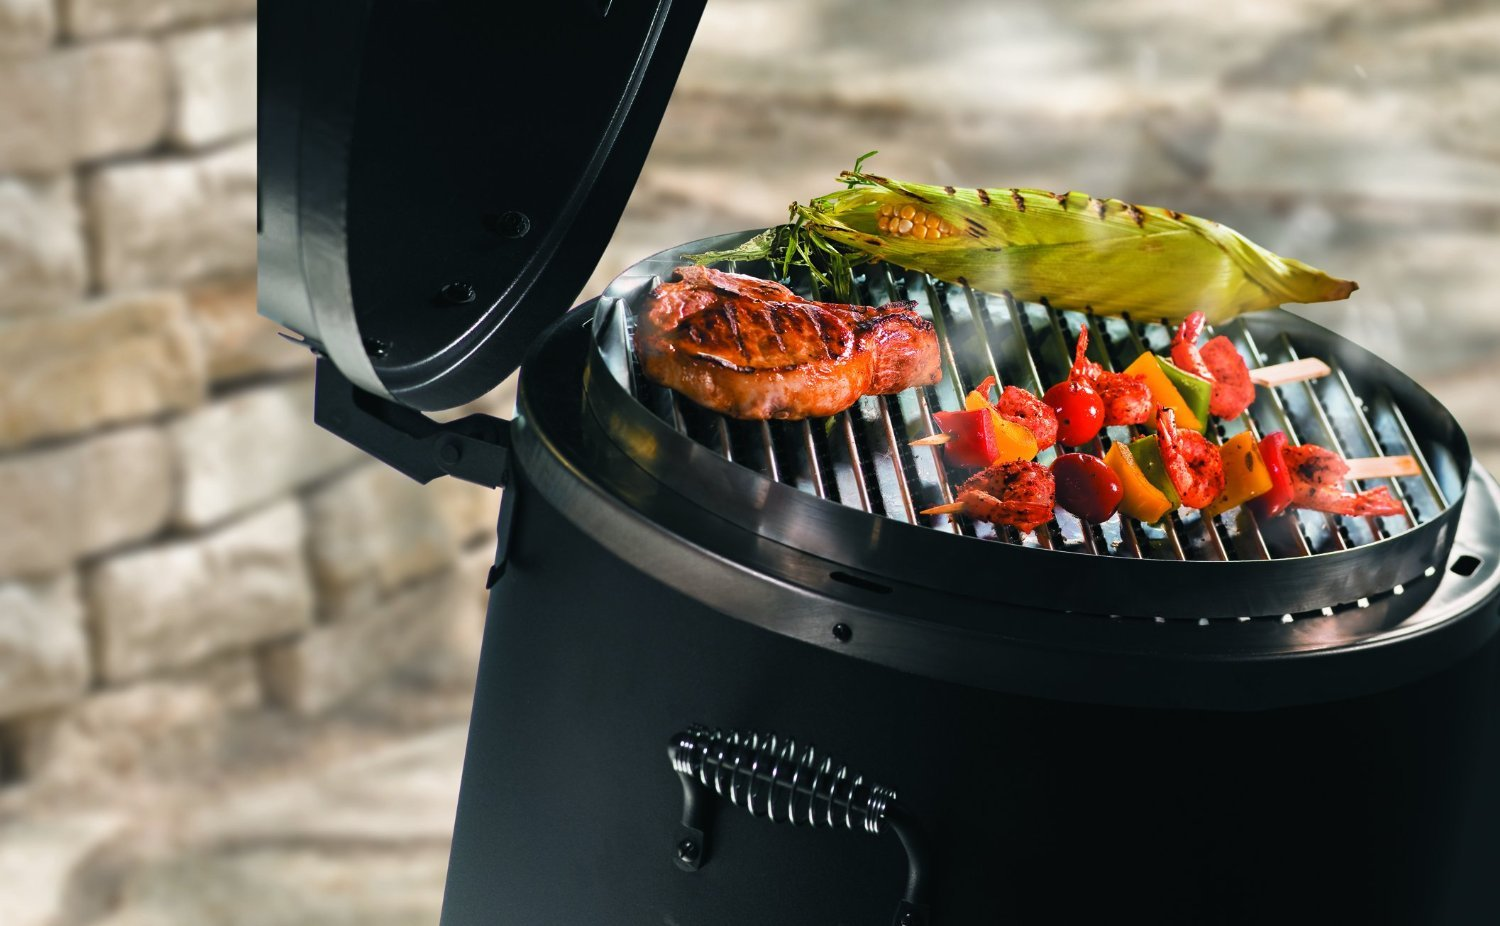 Char-Broil TRU-Infrared Smoker Roaster & Grill